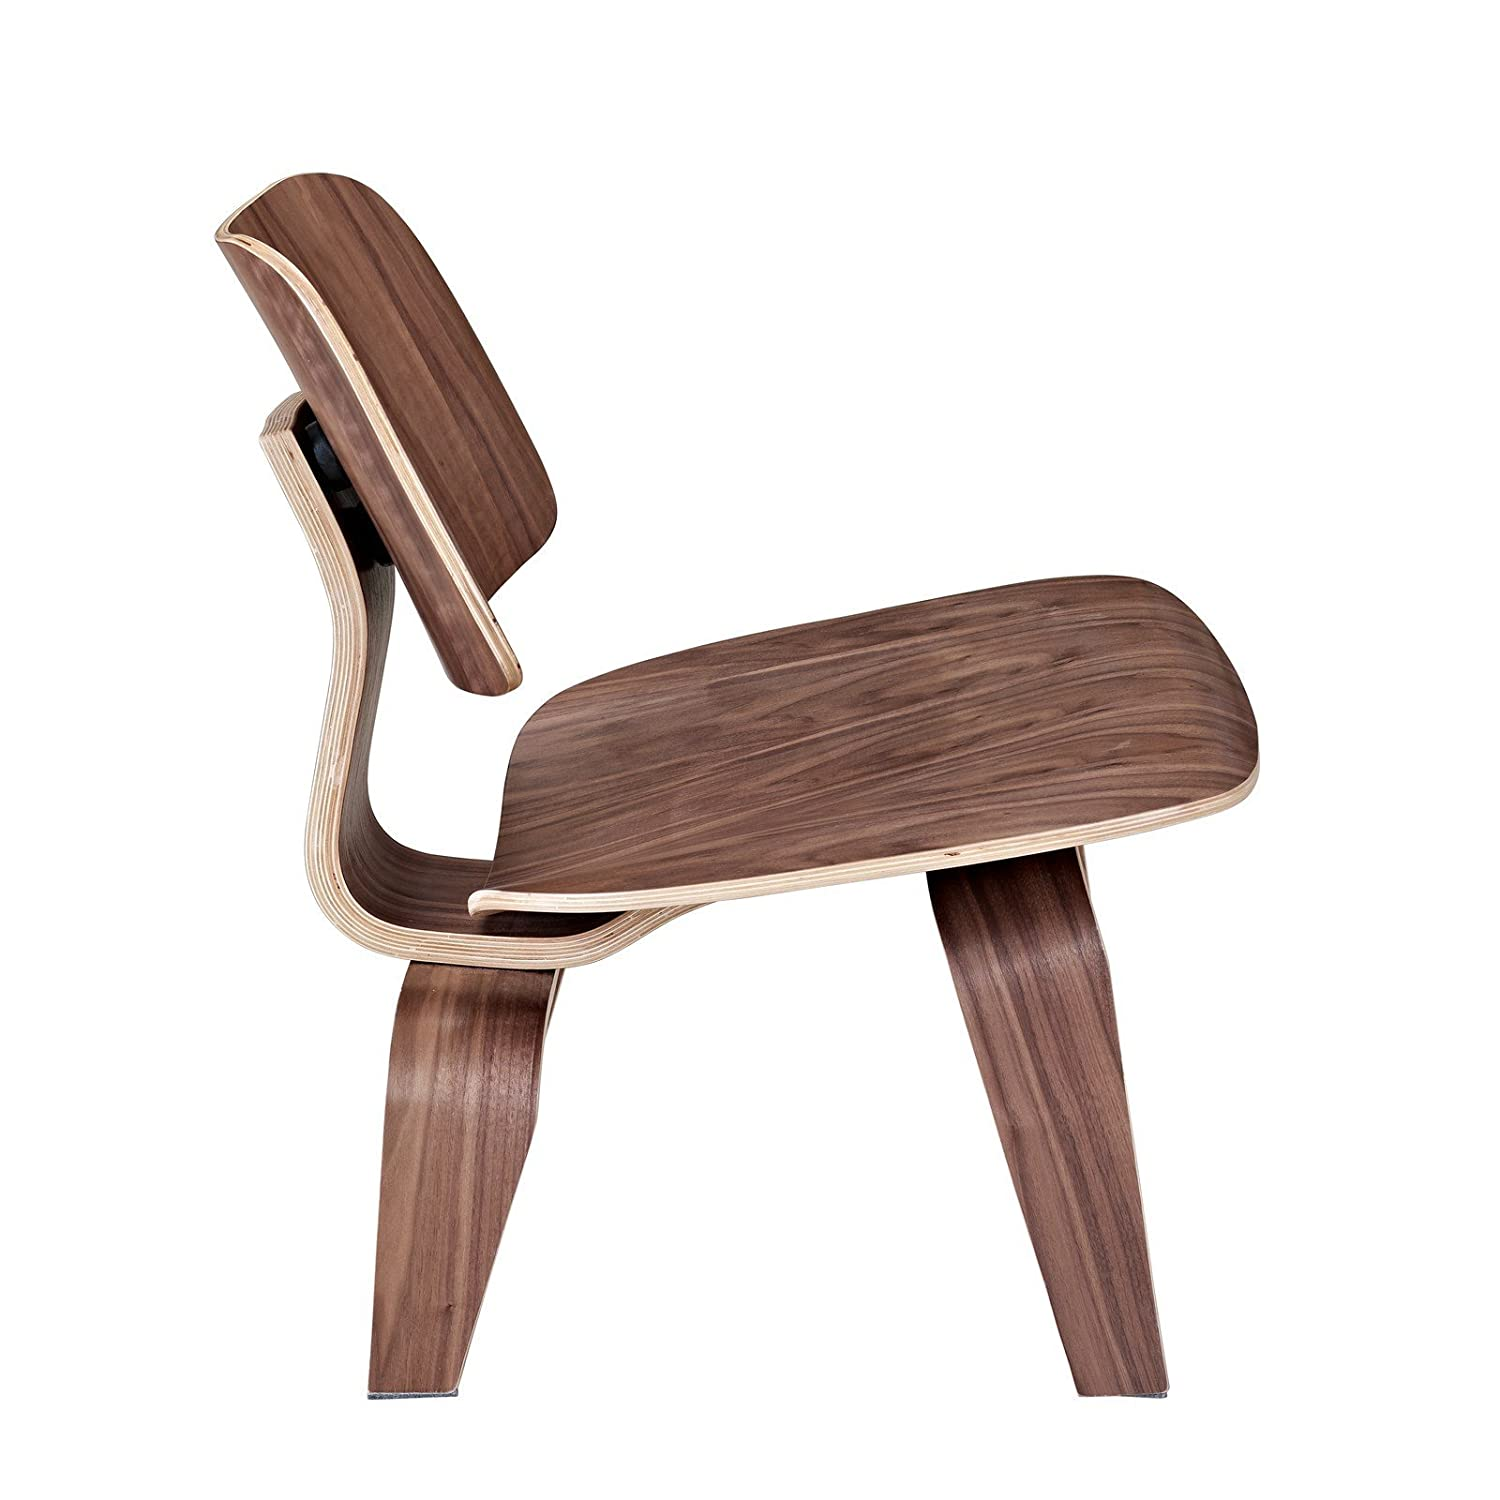 Herman miller plywood lounge chair - Lexmod Fathom Plywood Lounge Chair In Walnut Amazon Ca Home Kitchen